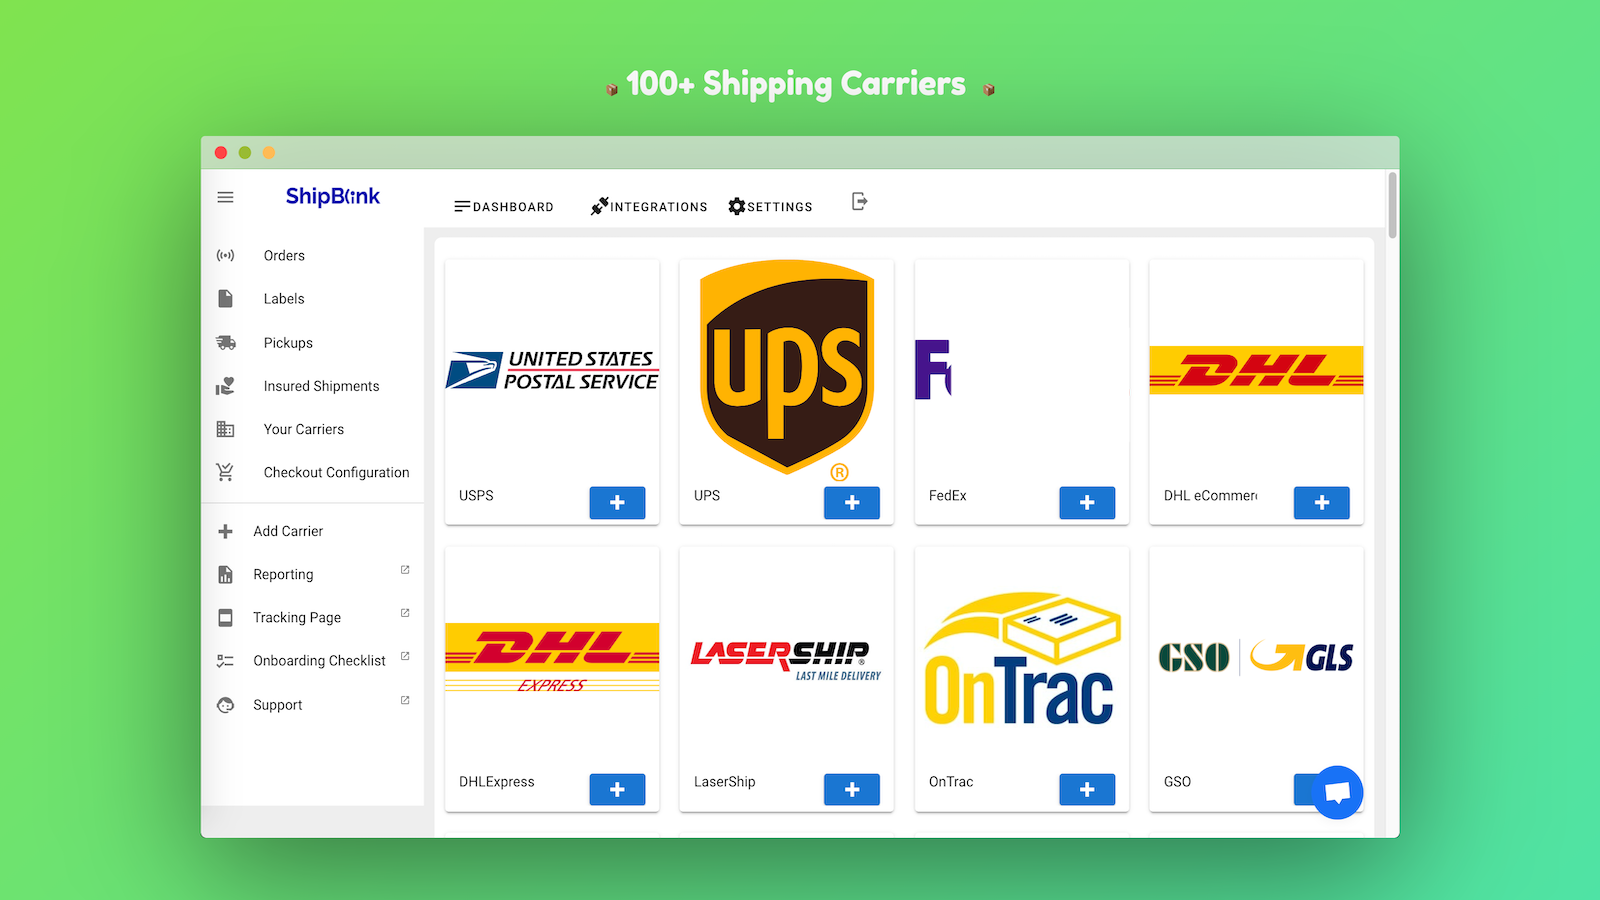 ShipBlink supports all EasyPost Shipping Carriers